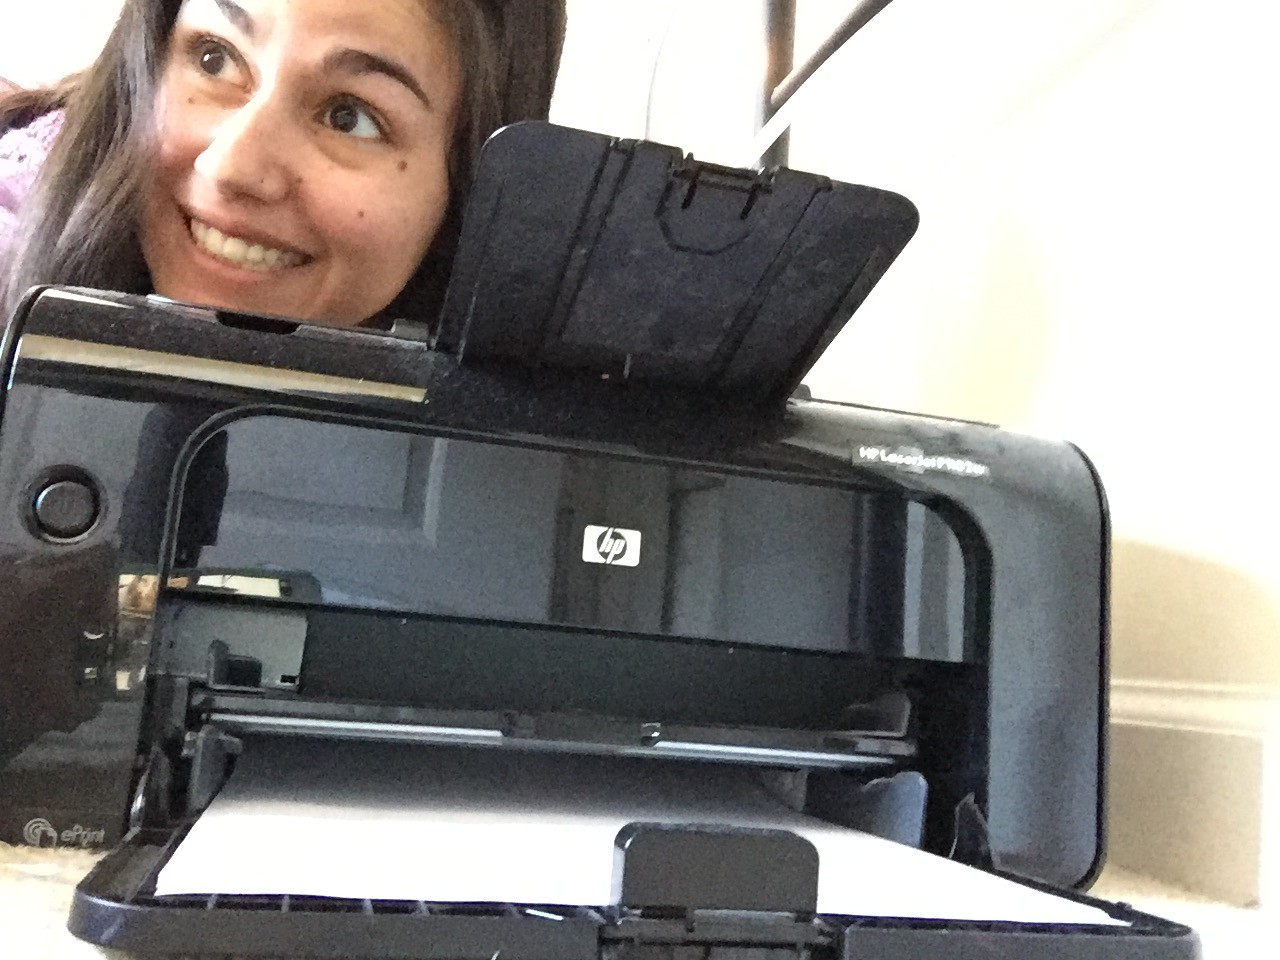 why i am obsessed with my printer | the merriweather council blog